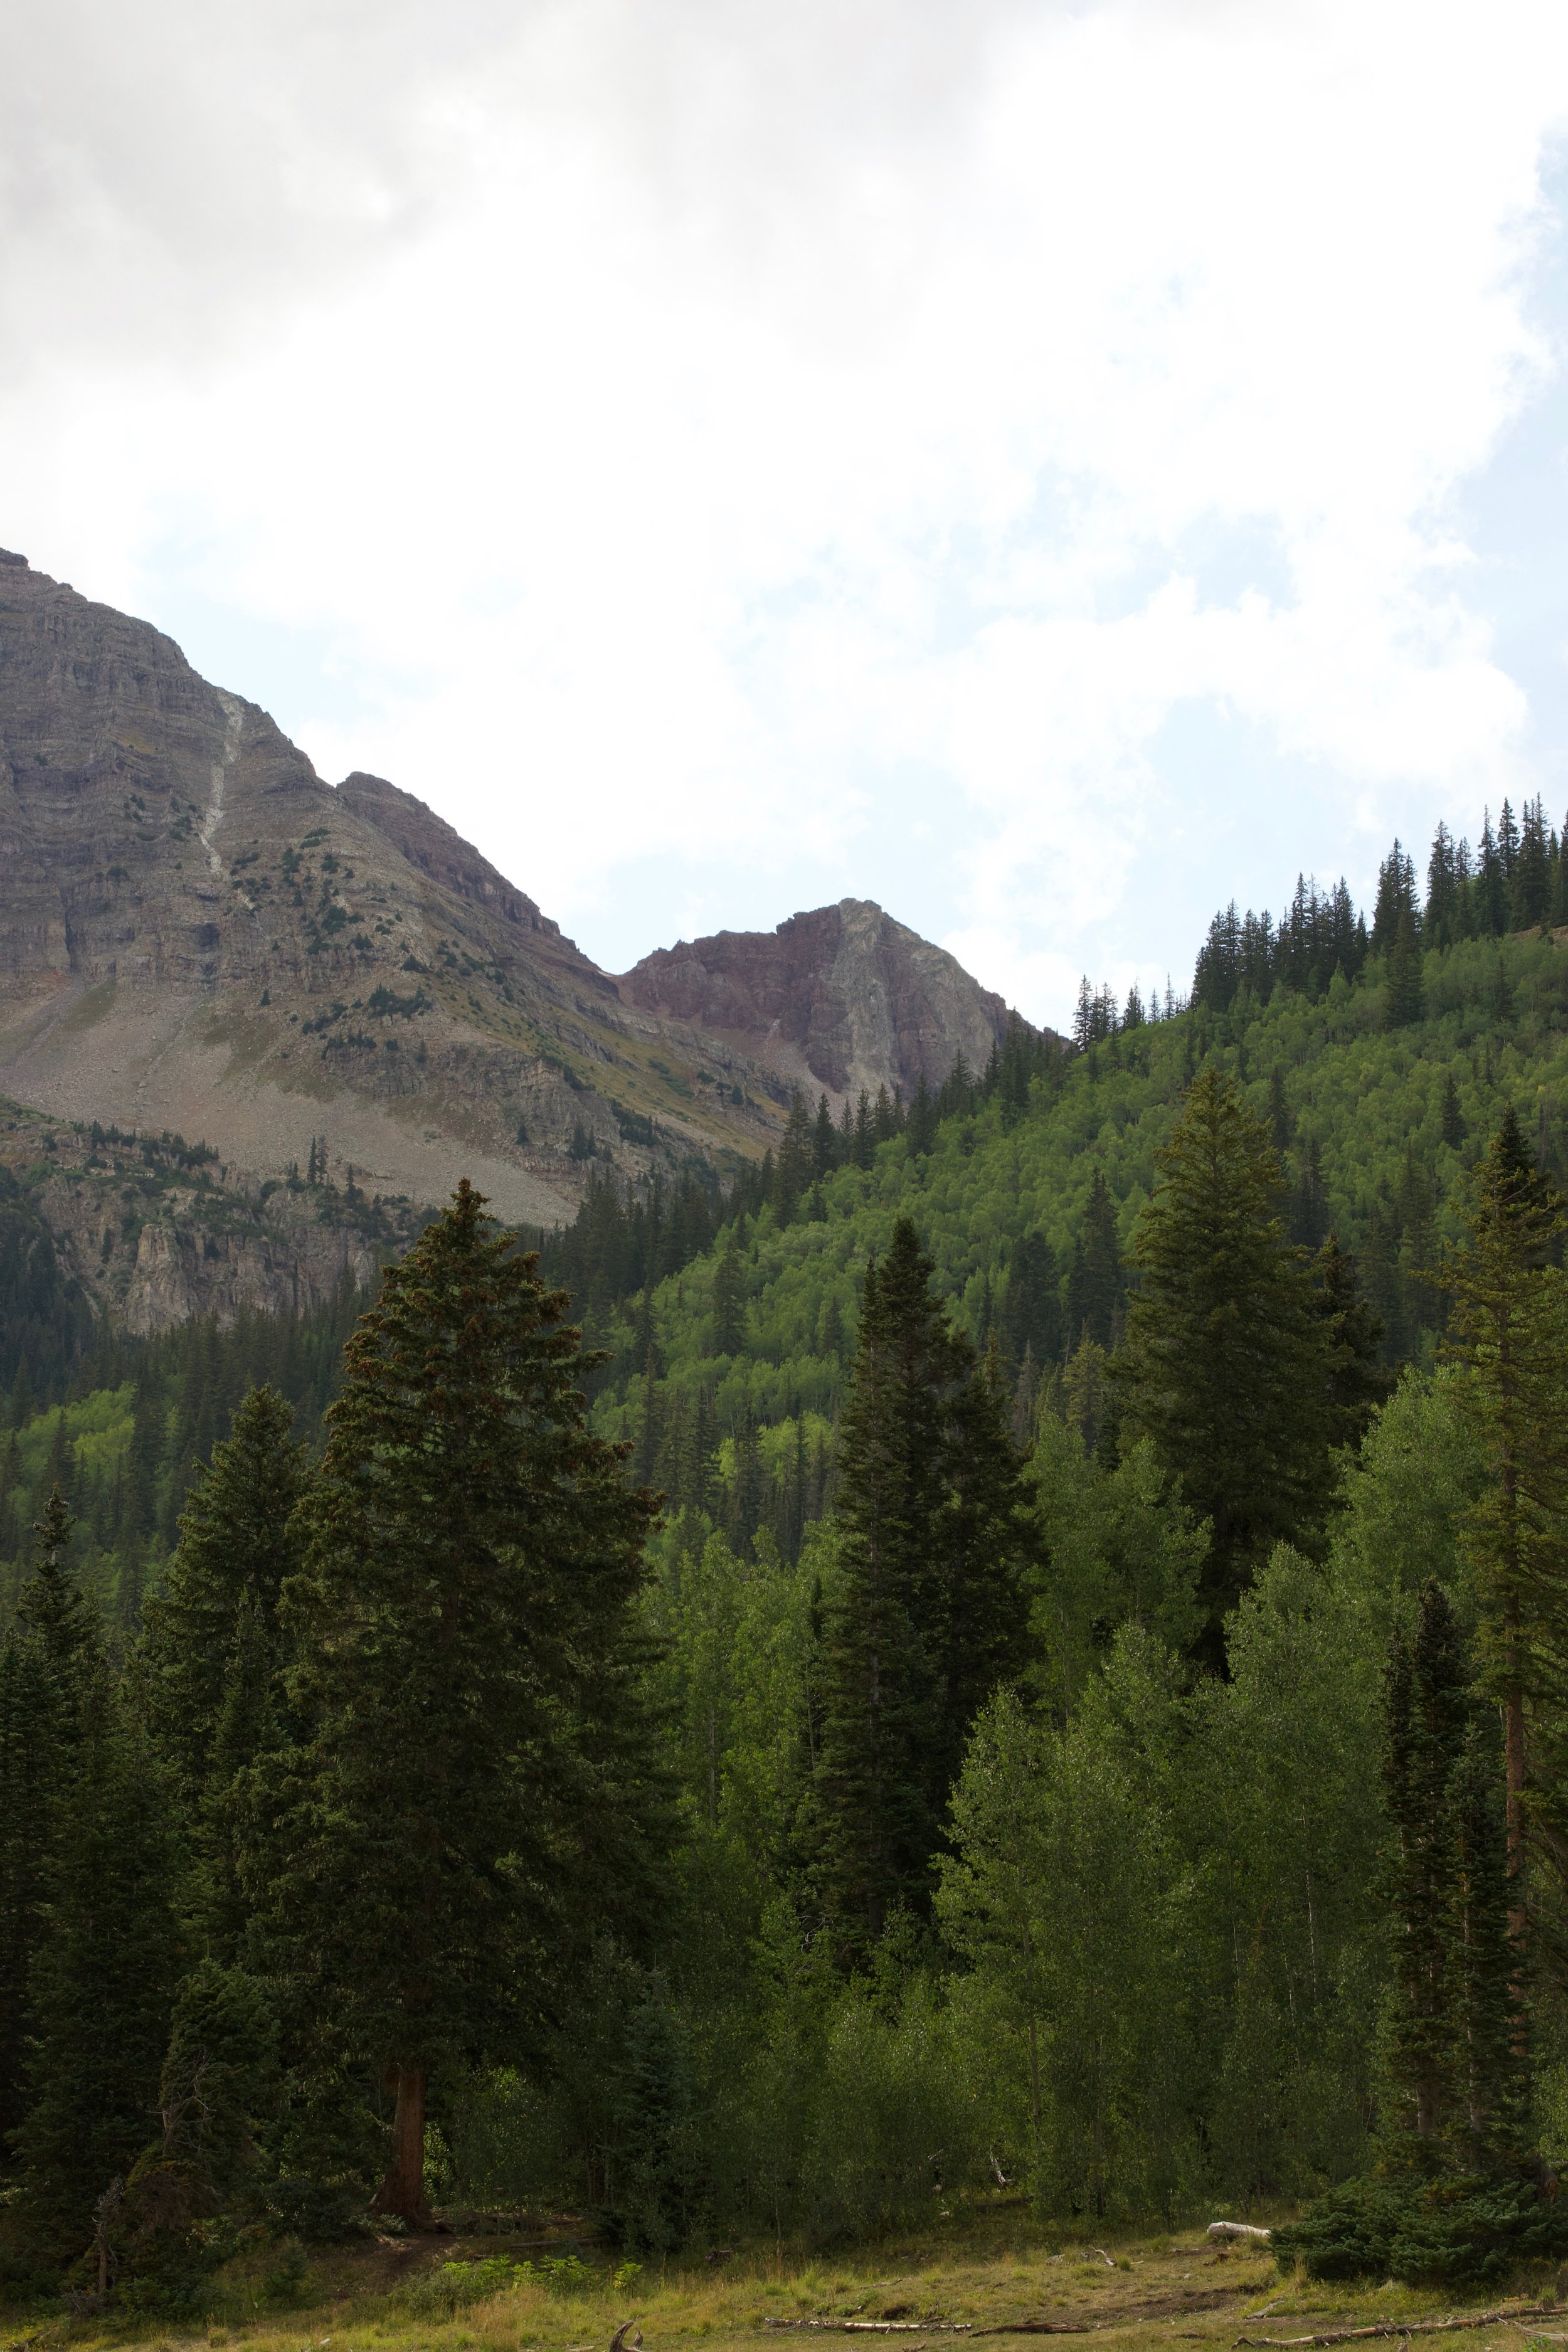 The Maroon Bells at Crater Lake